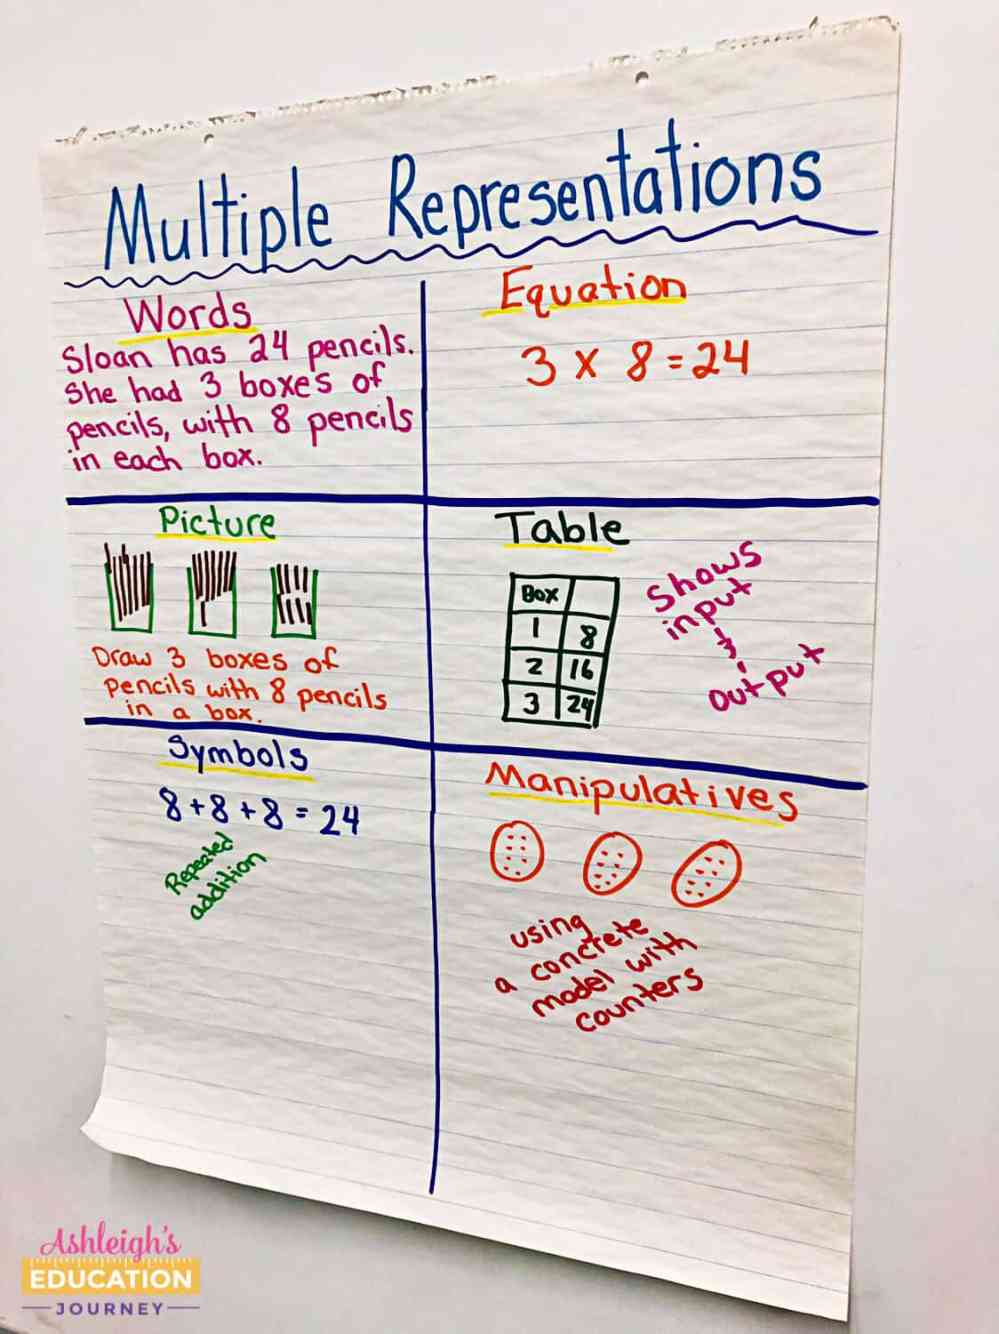 medium resolution of Teaching Multi-Step Word Problems - Ashleigh's Education Journey